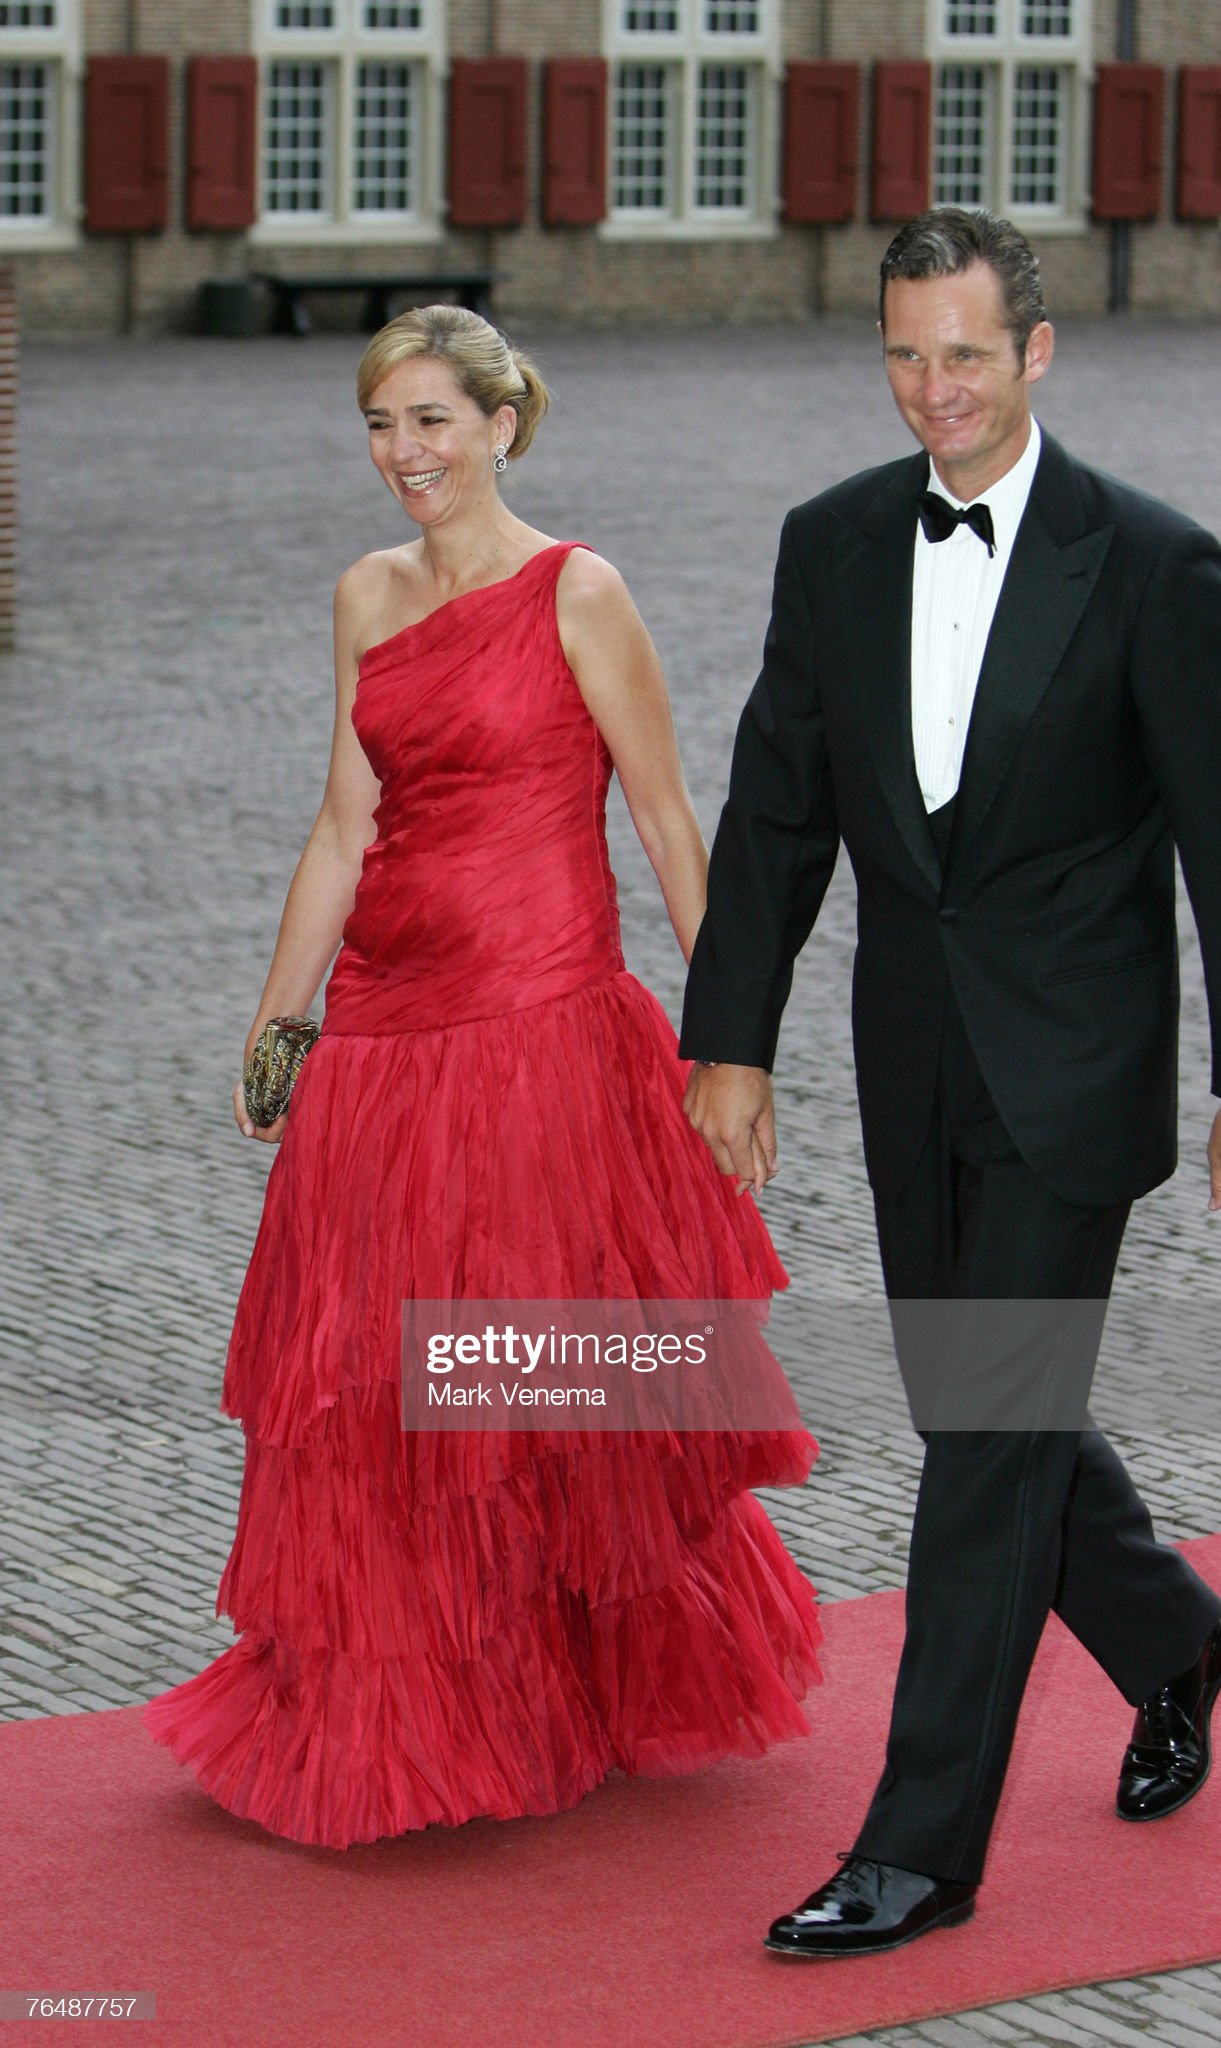 Birthday Party HRH Crown Prince Willem-Alexander of the Netherlands -Arrivals : News Photo